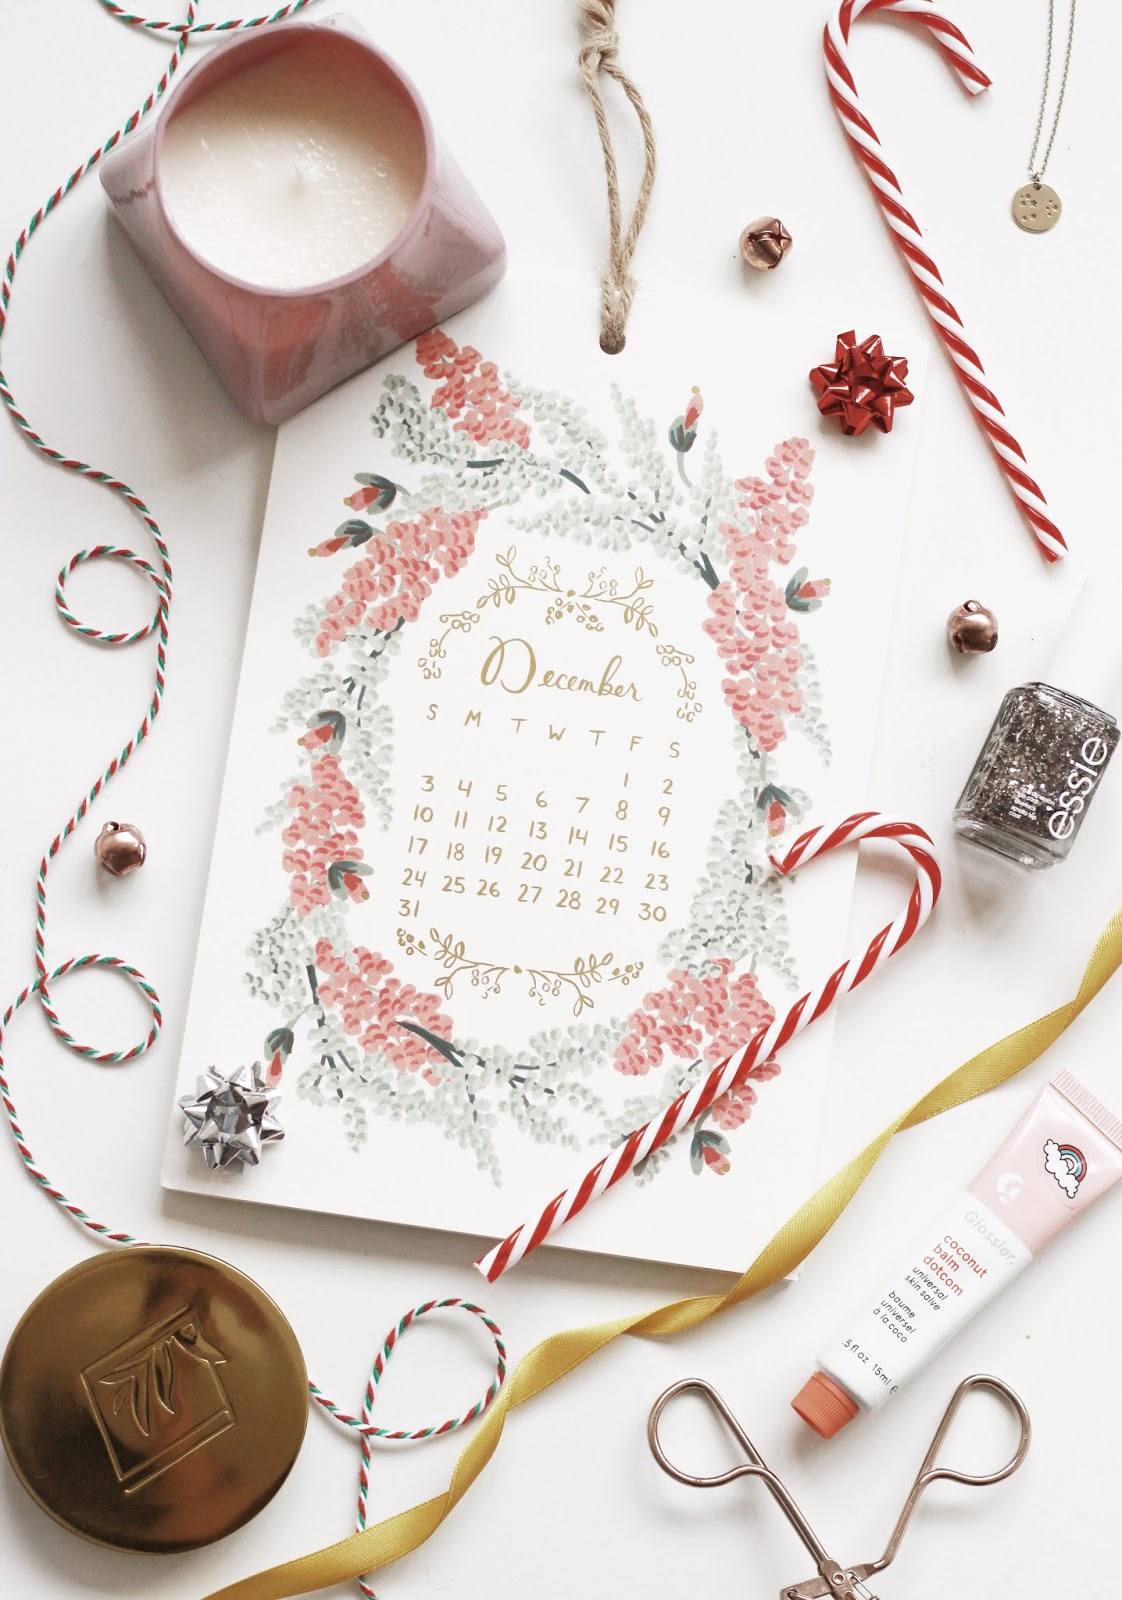 5 Things I've Added To My December To-Do List | Pint Sized Beauty